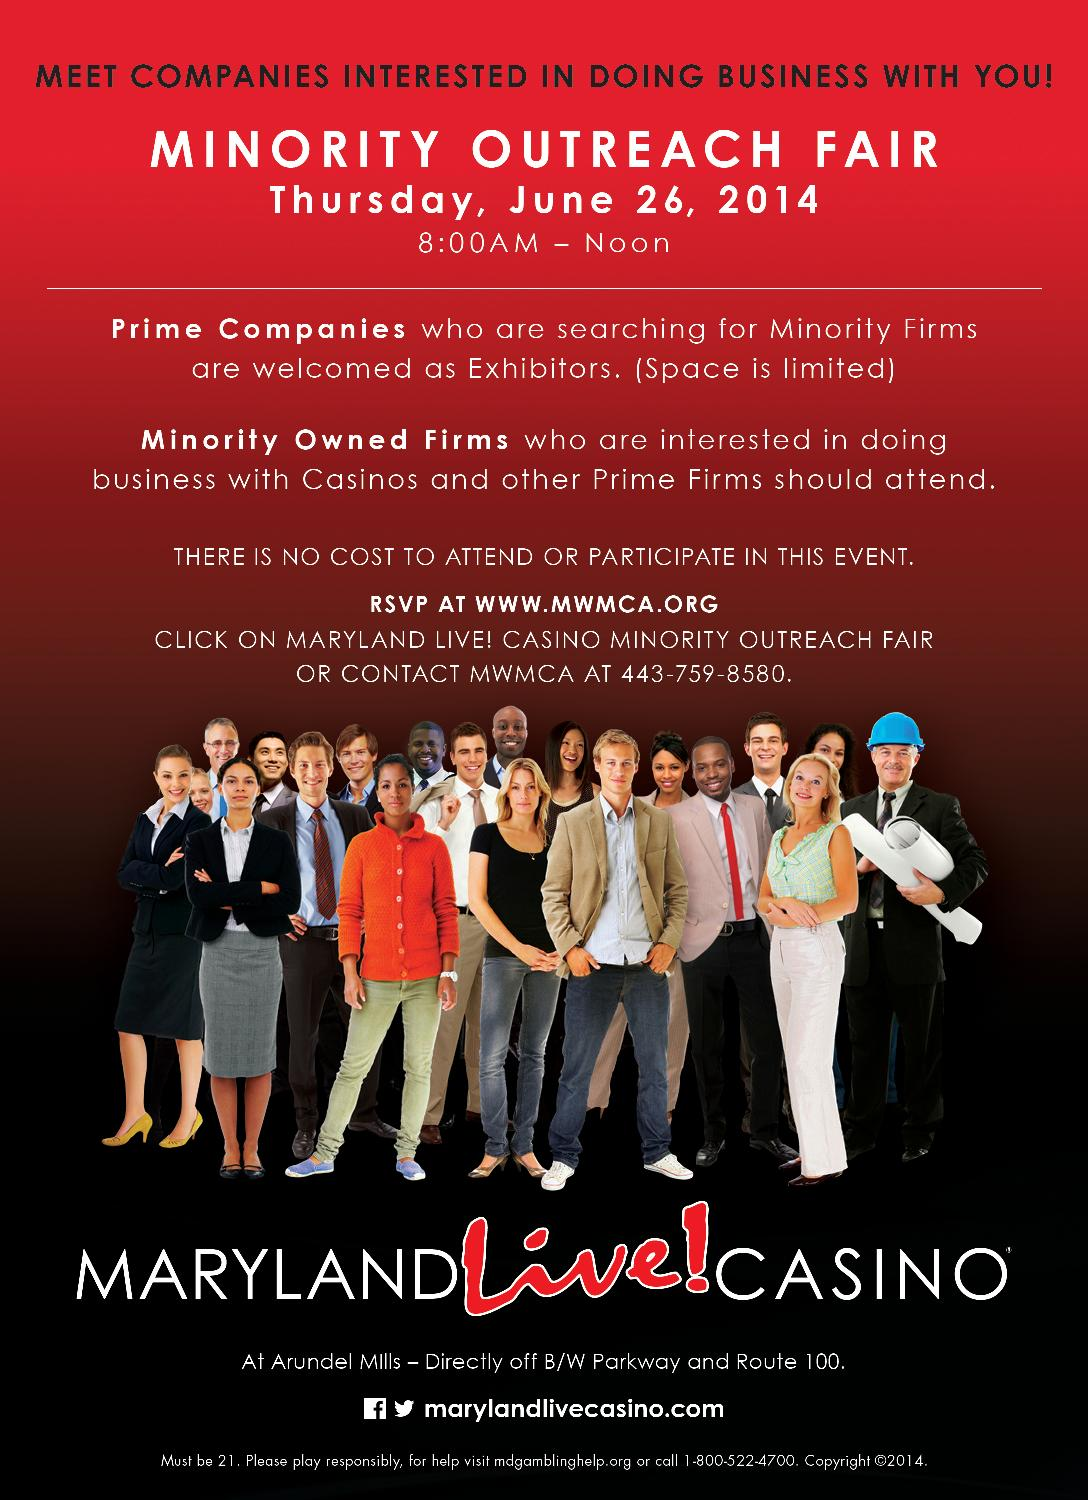 Maryland Live Casino Minority Outreach Fair Attendee